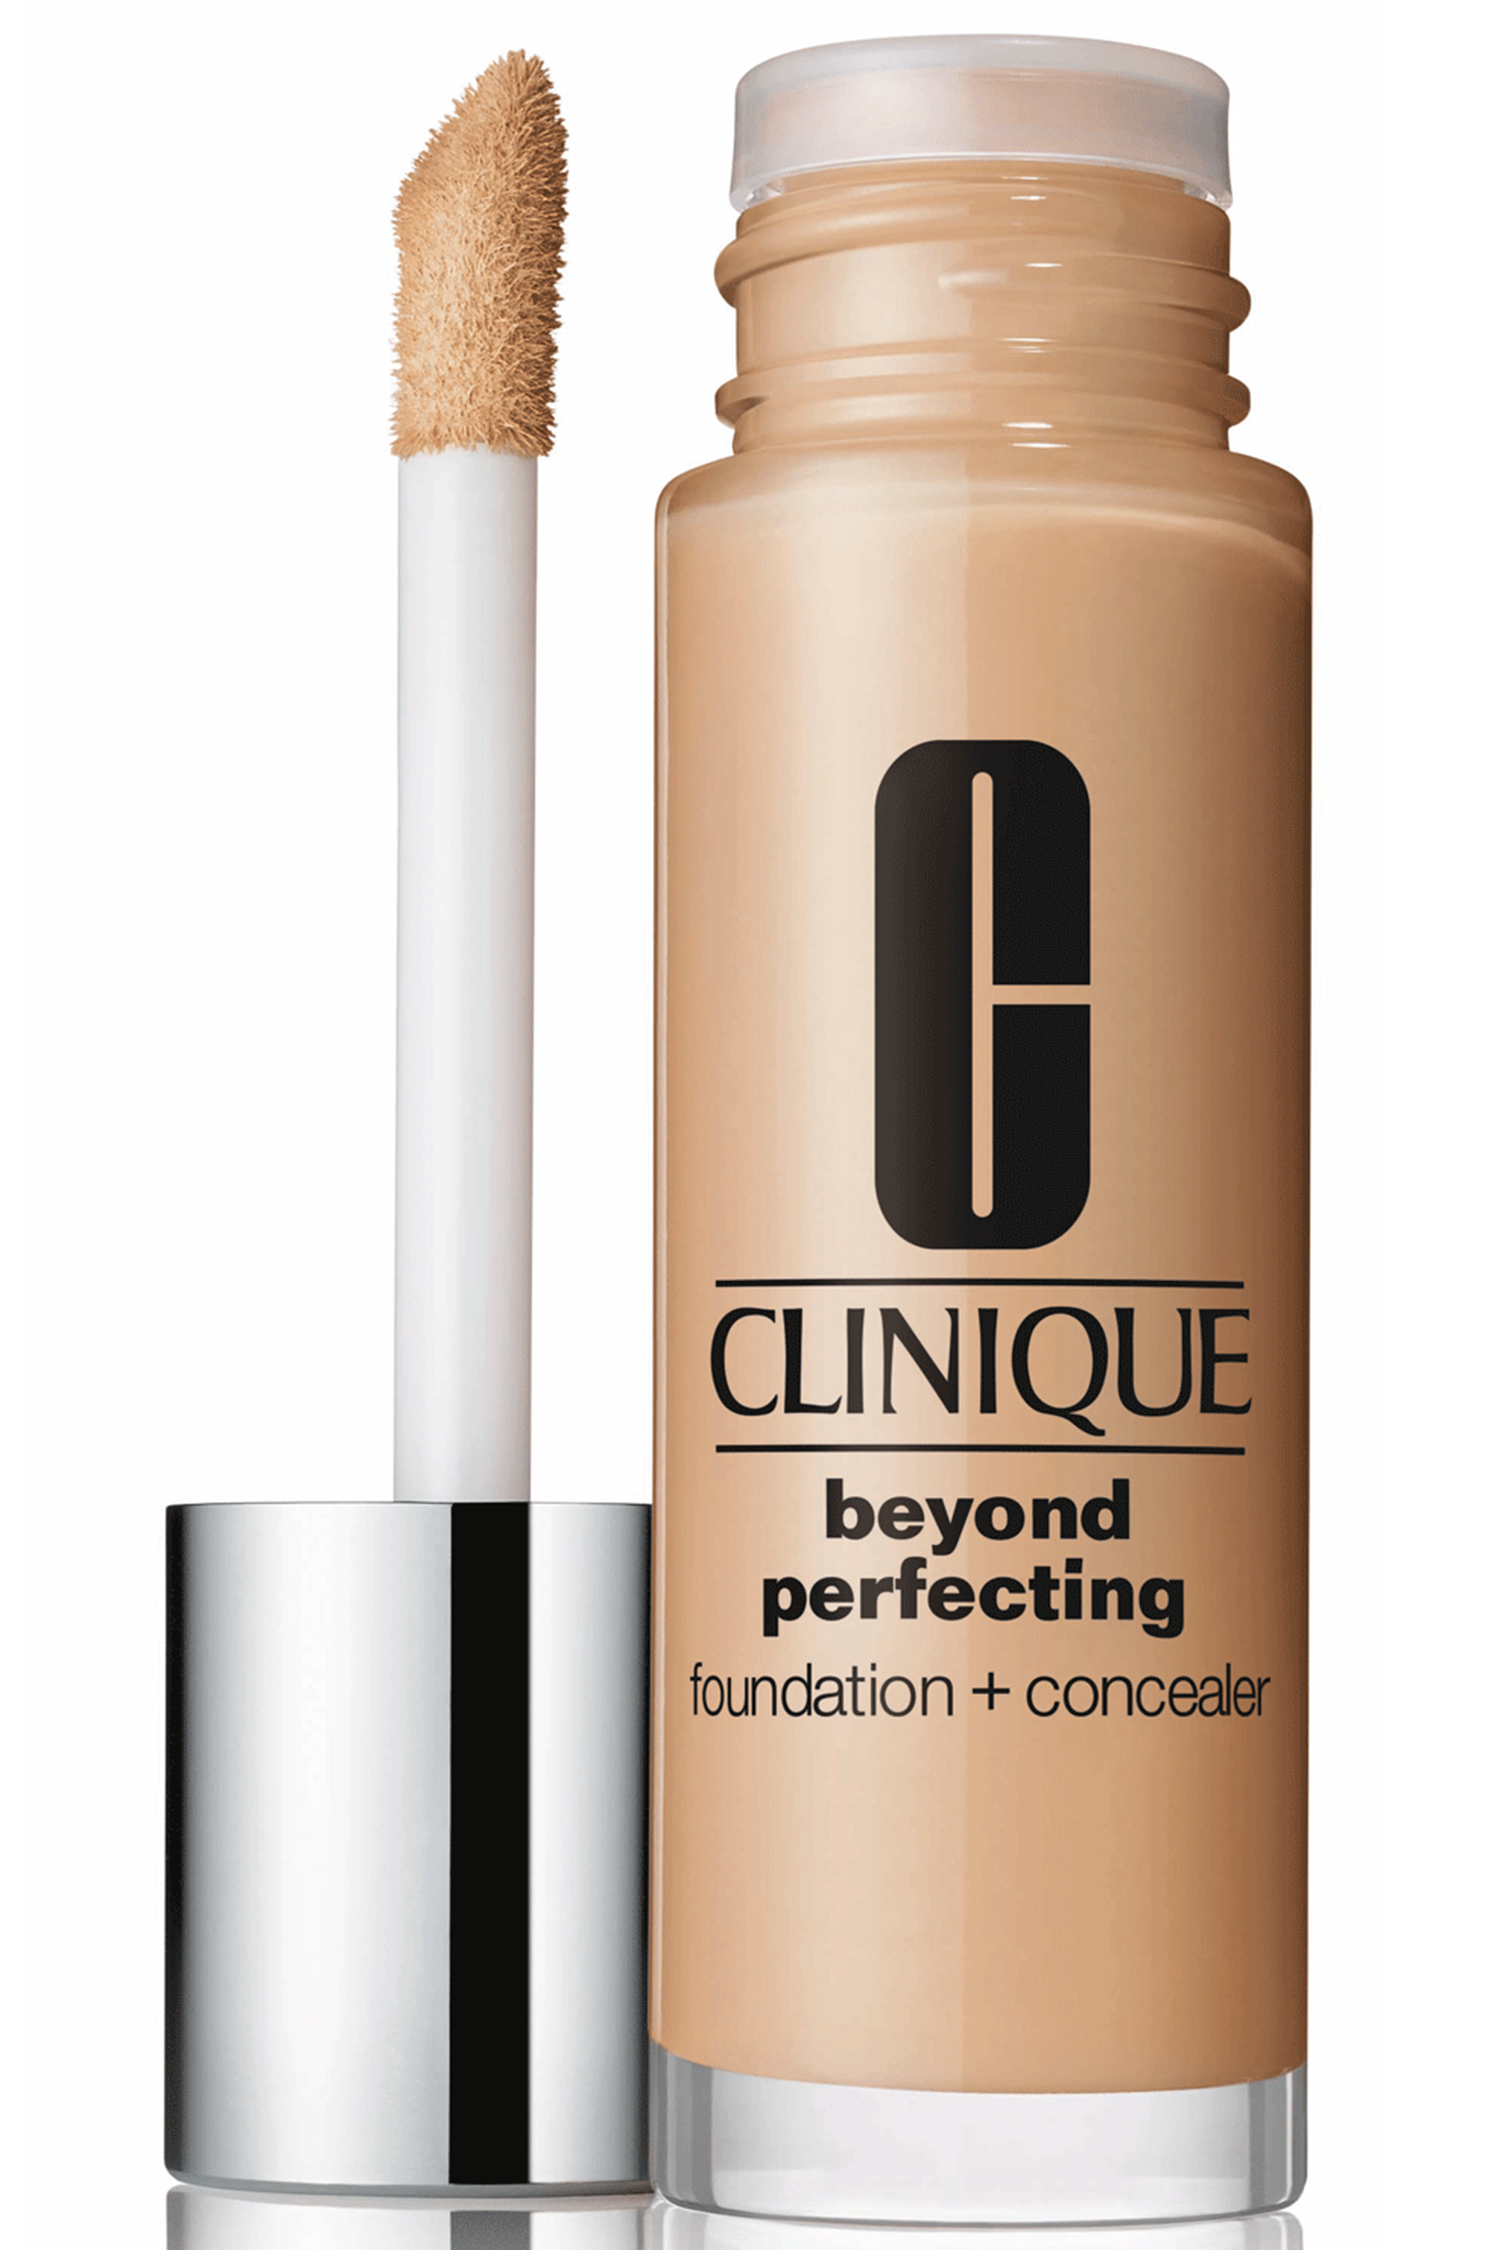 13 Foundations to Address Every Skin Concern | Makeup